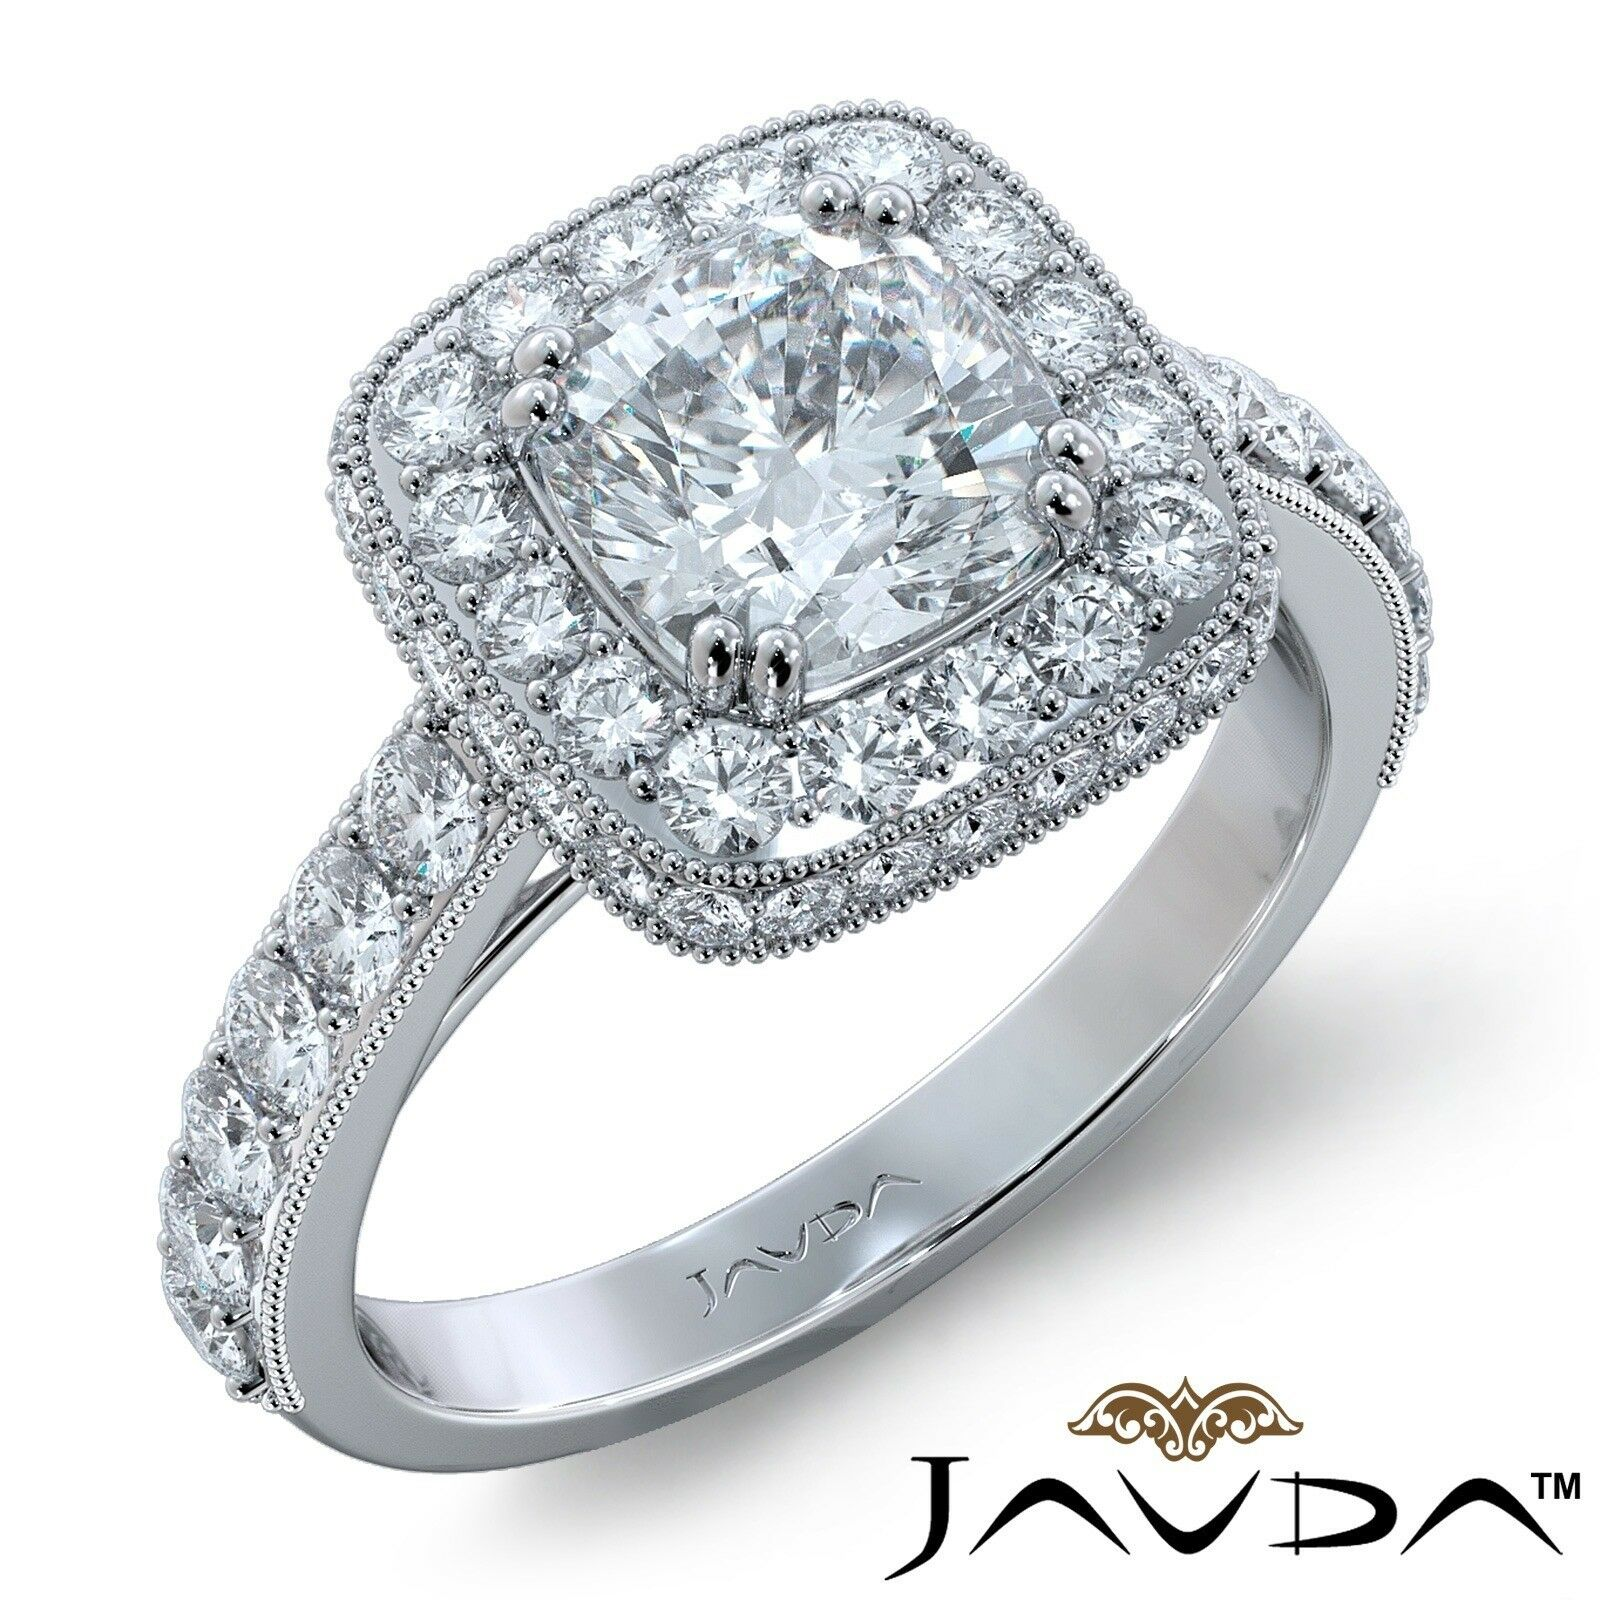 1.94ctw Milgrain Floral Basket Cushion Diamond Engagement Ring GIA E-VVS1 W Gold